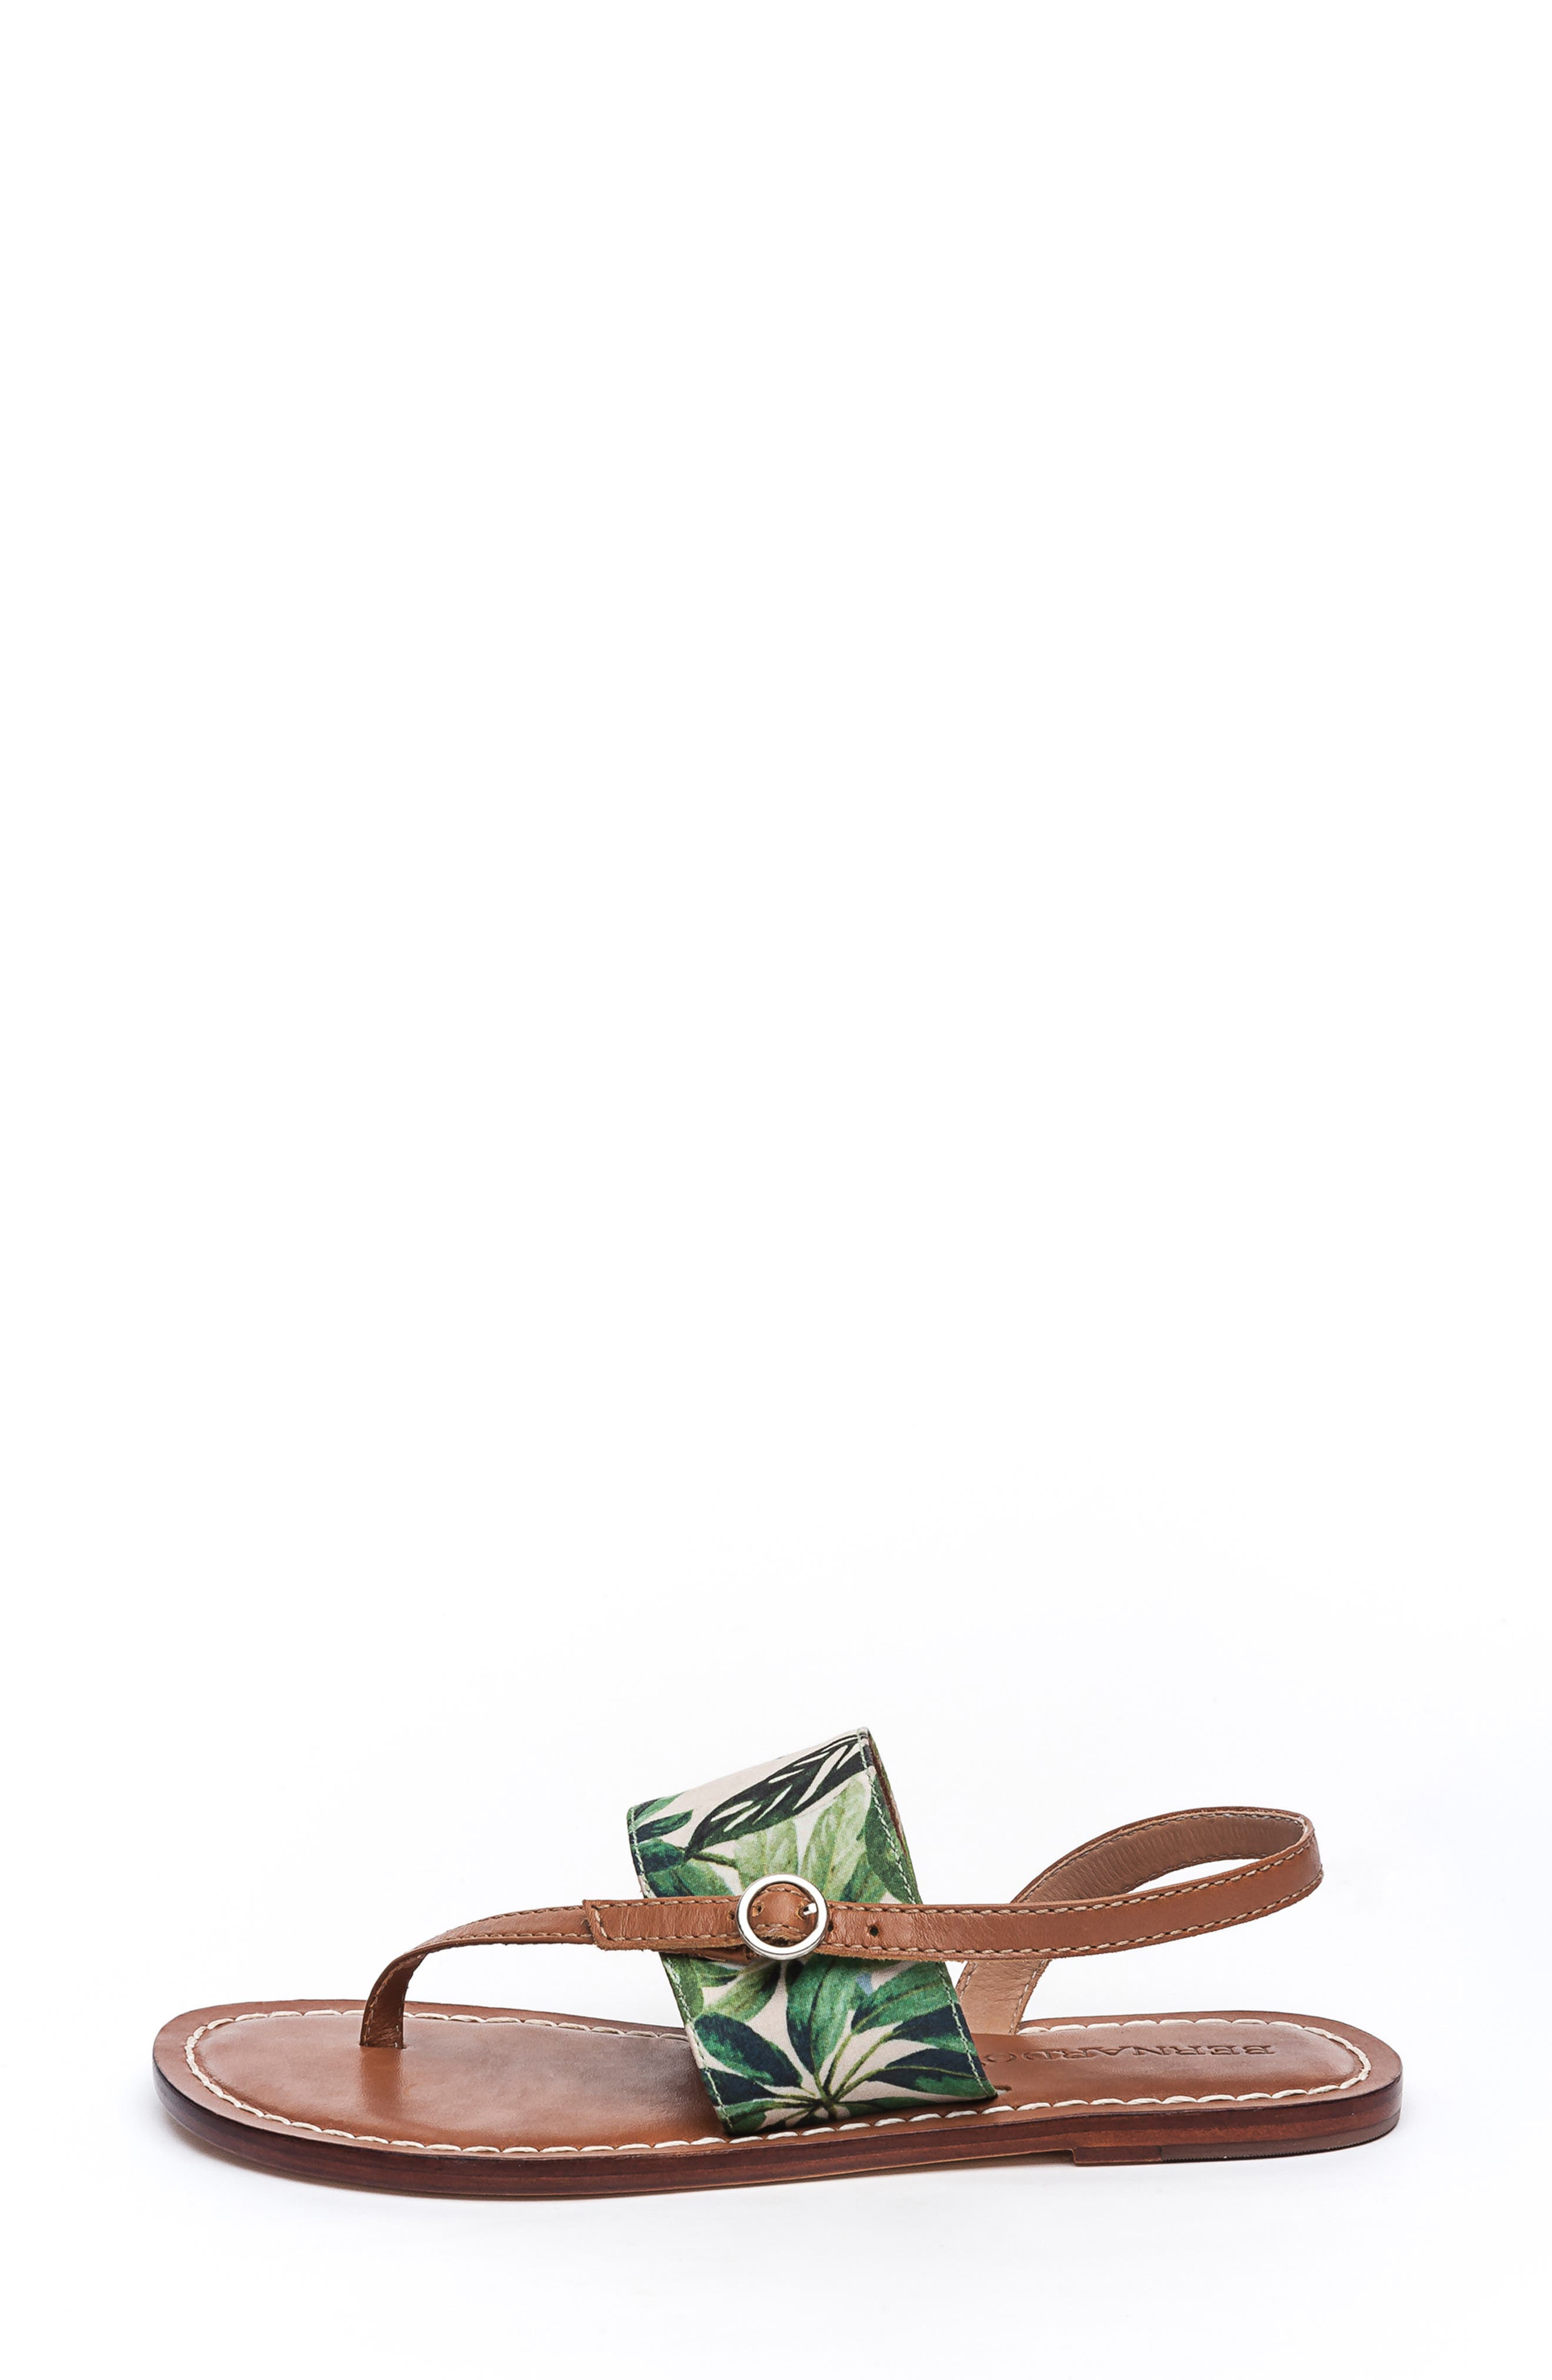 BERNARDO, Footwear Meg Thong Sandal, Alternate thumbnail 3, color, PALM FABRIC/ LUGGAGE LEATHER